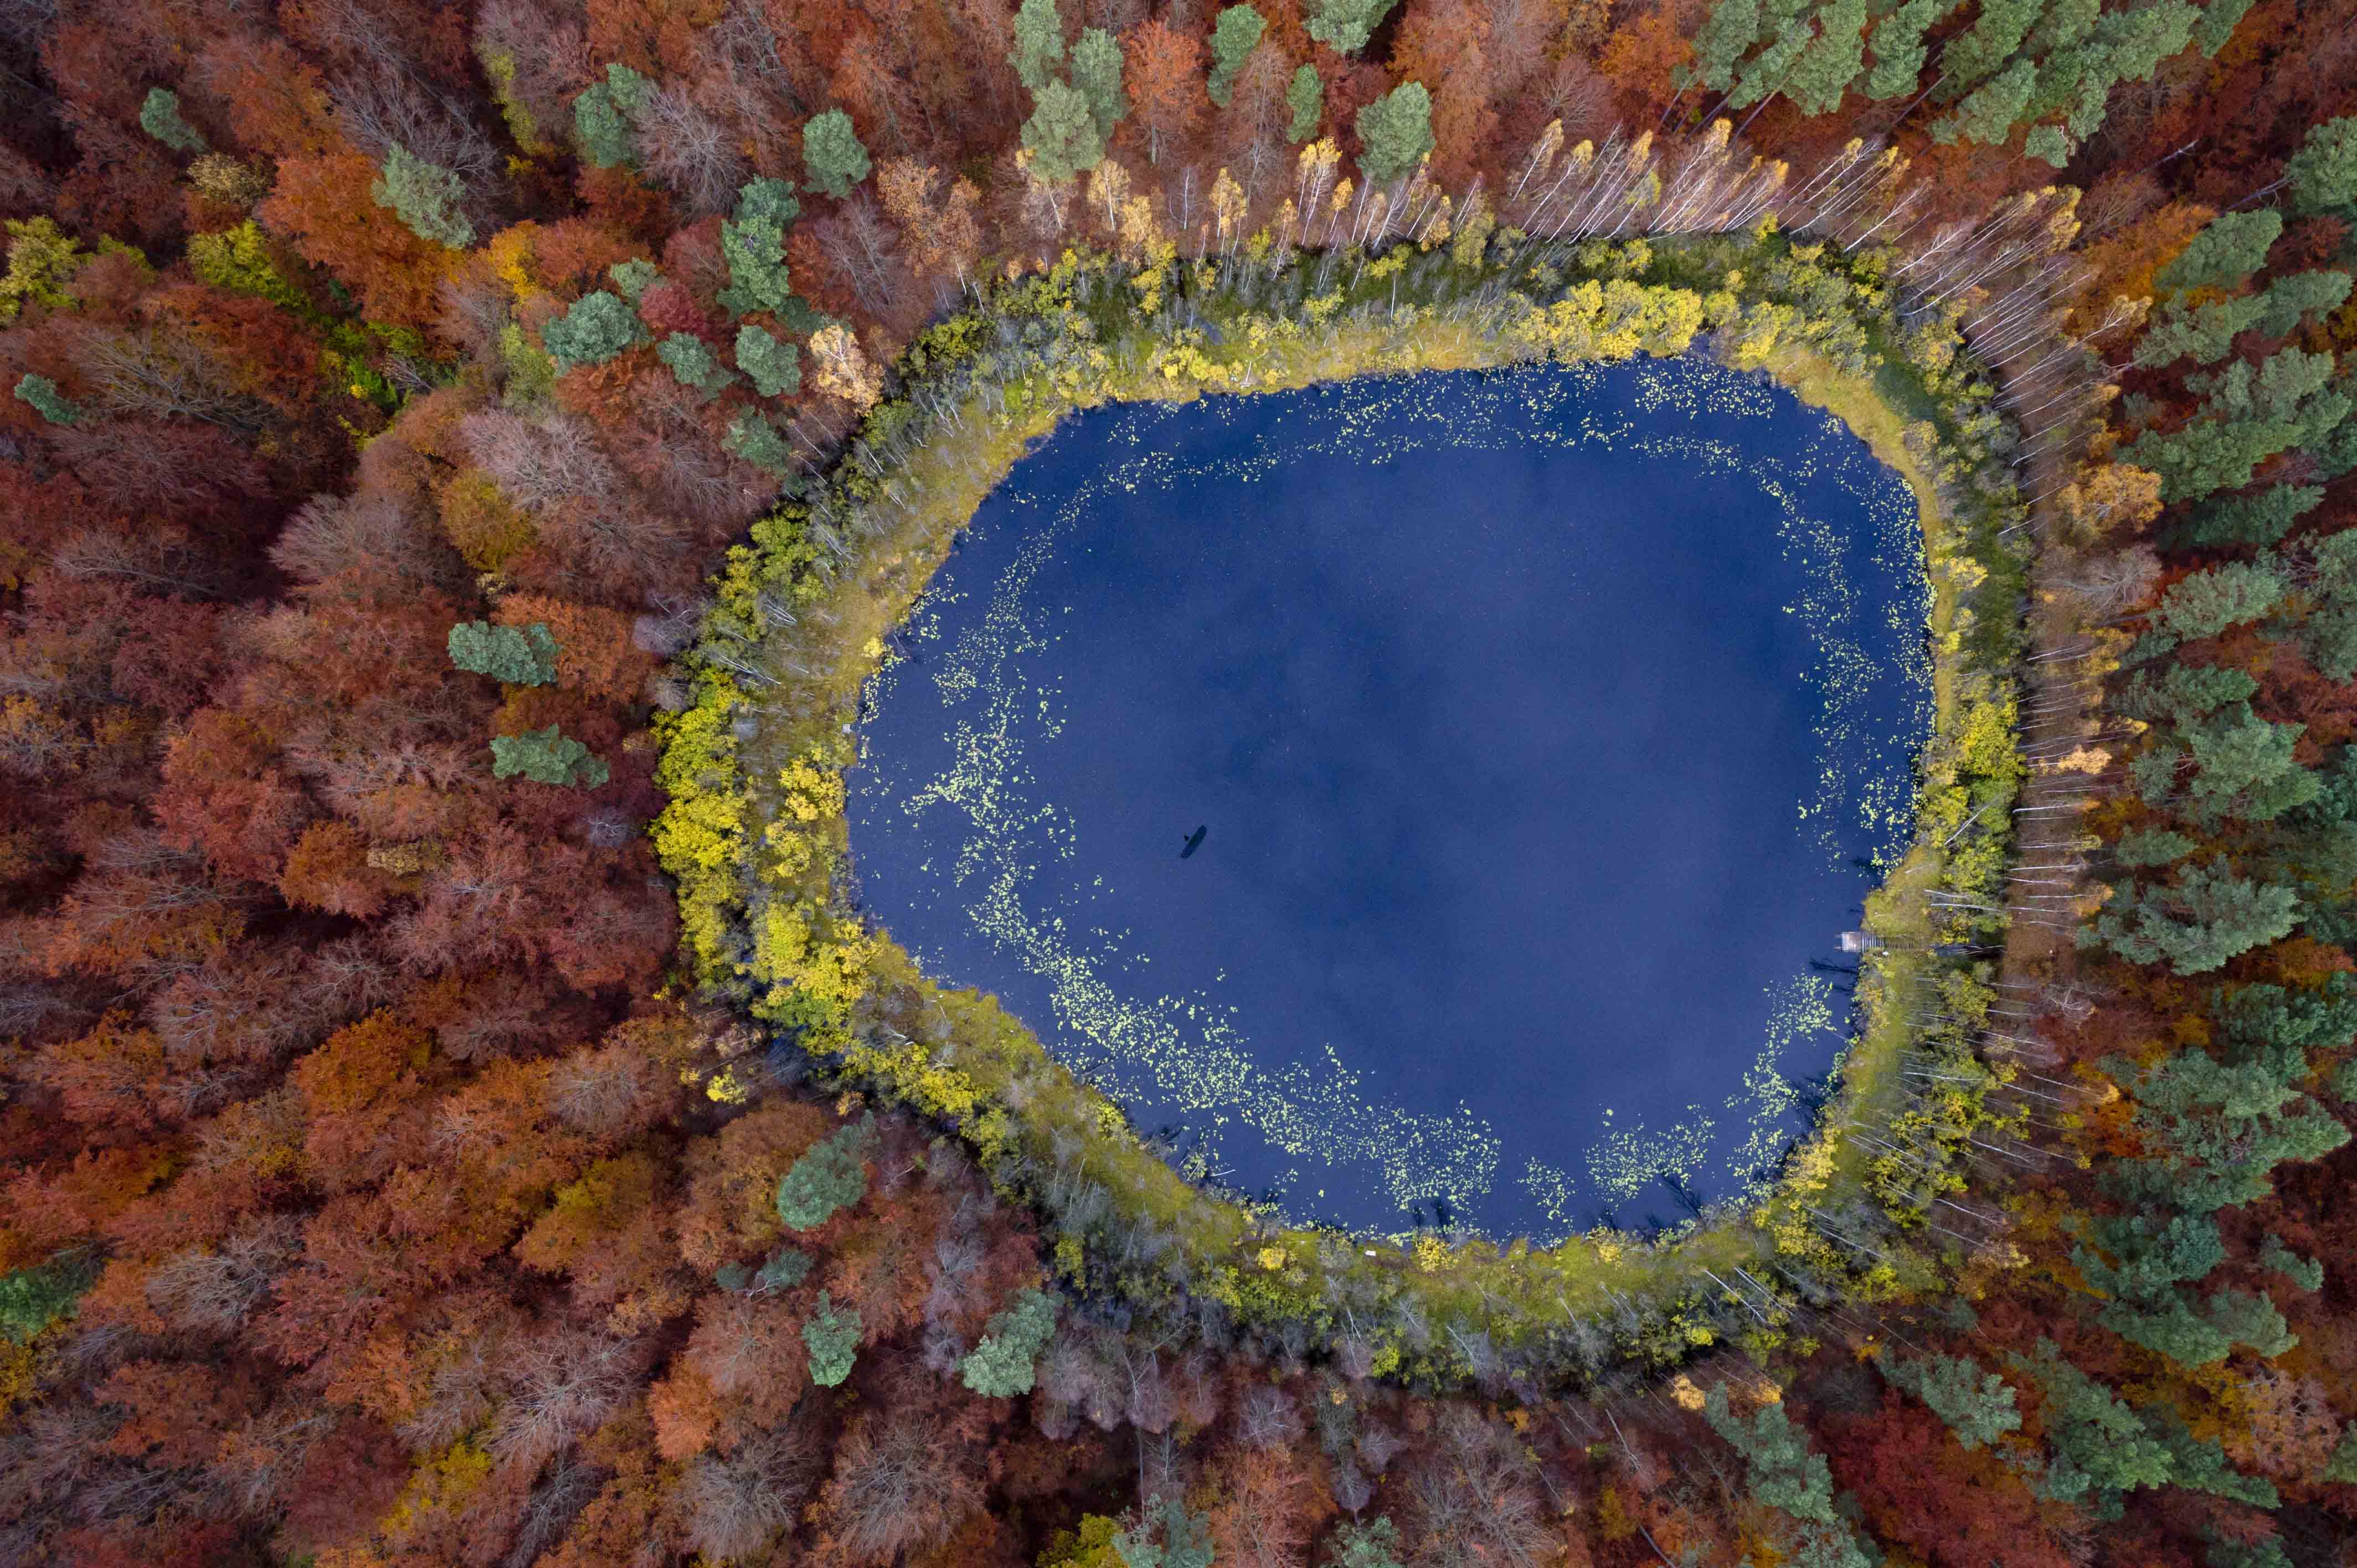 A view over a lake in a forest, Kashubia, Poland.